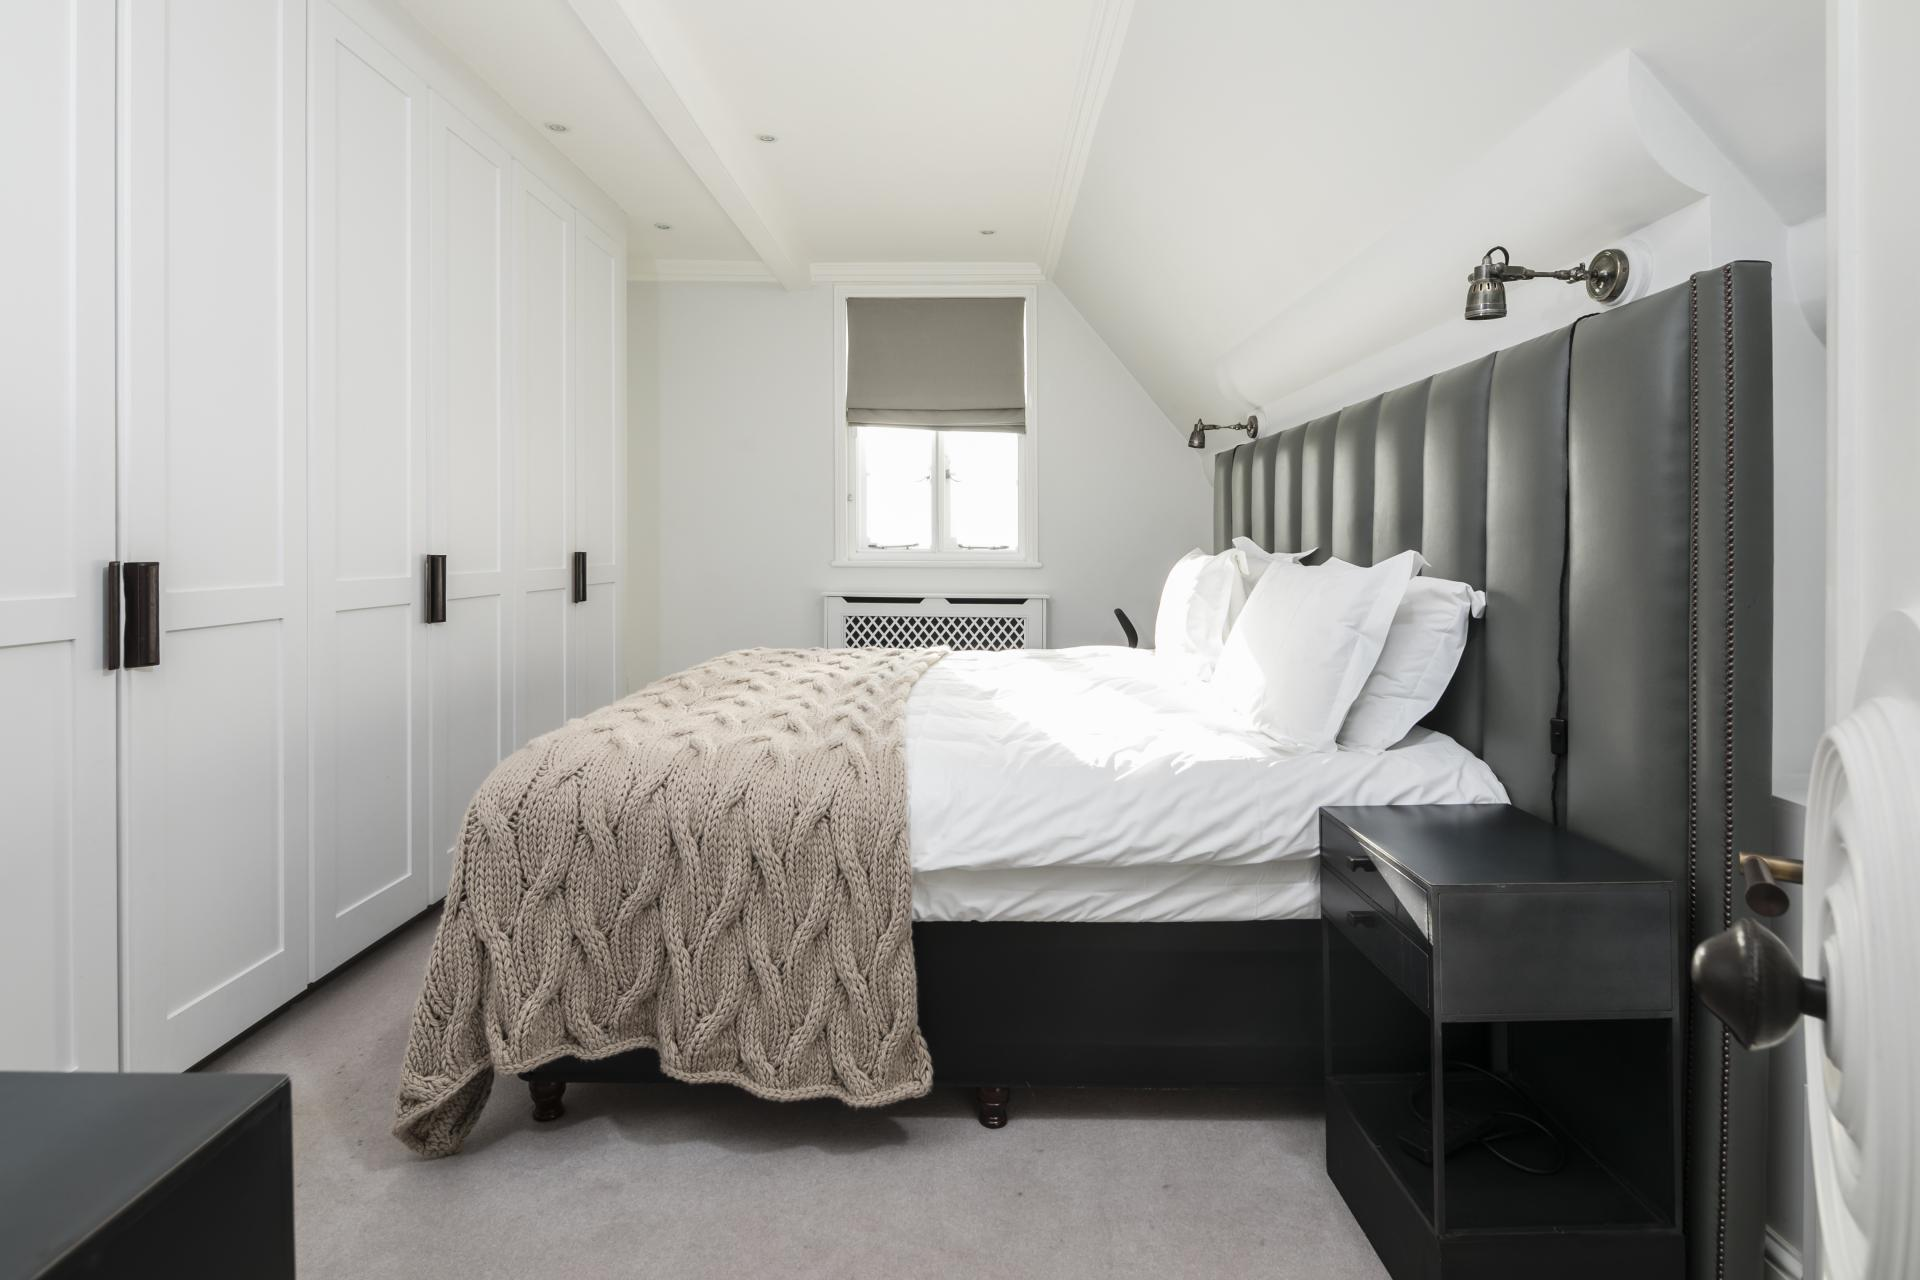 Double bed at Luxurious Mayfair Apartments, Mayfair, London